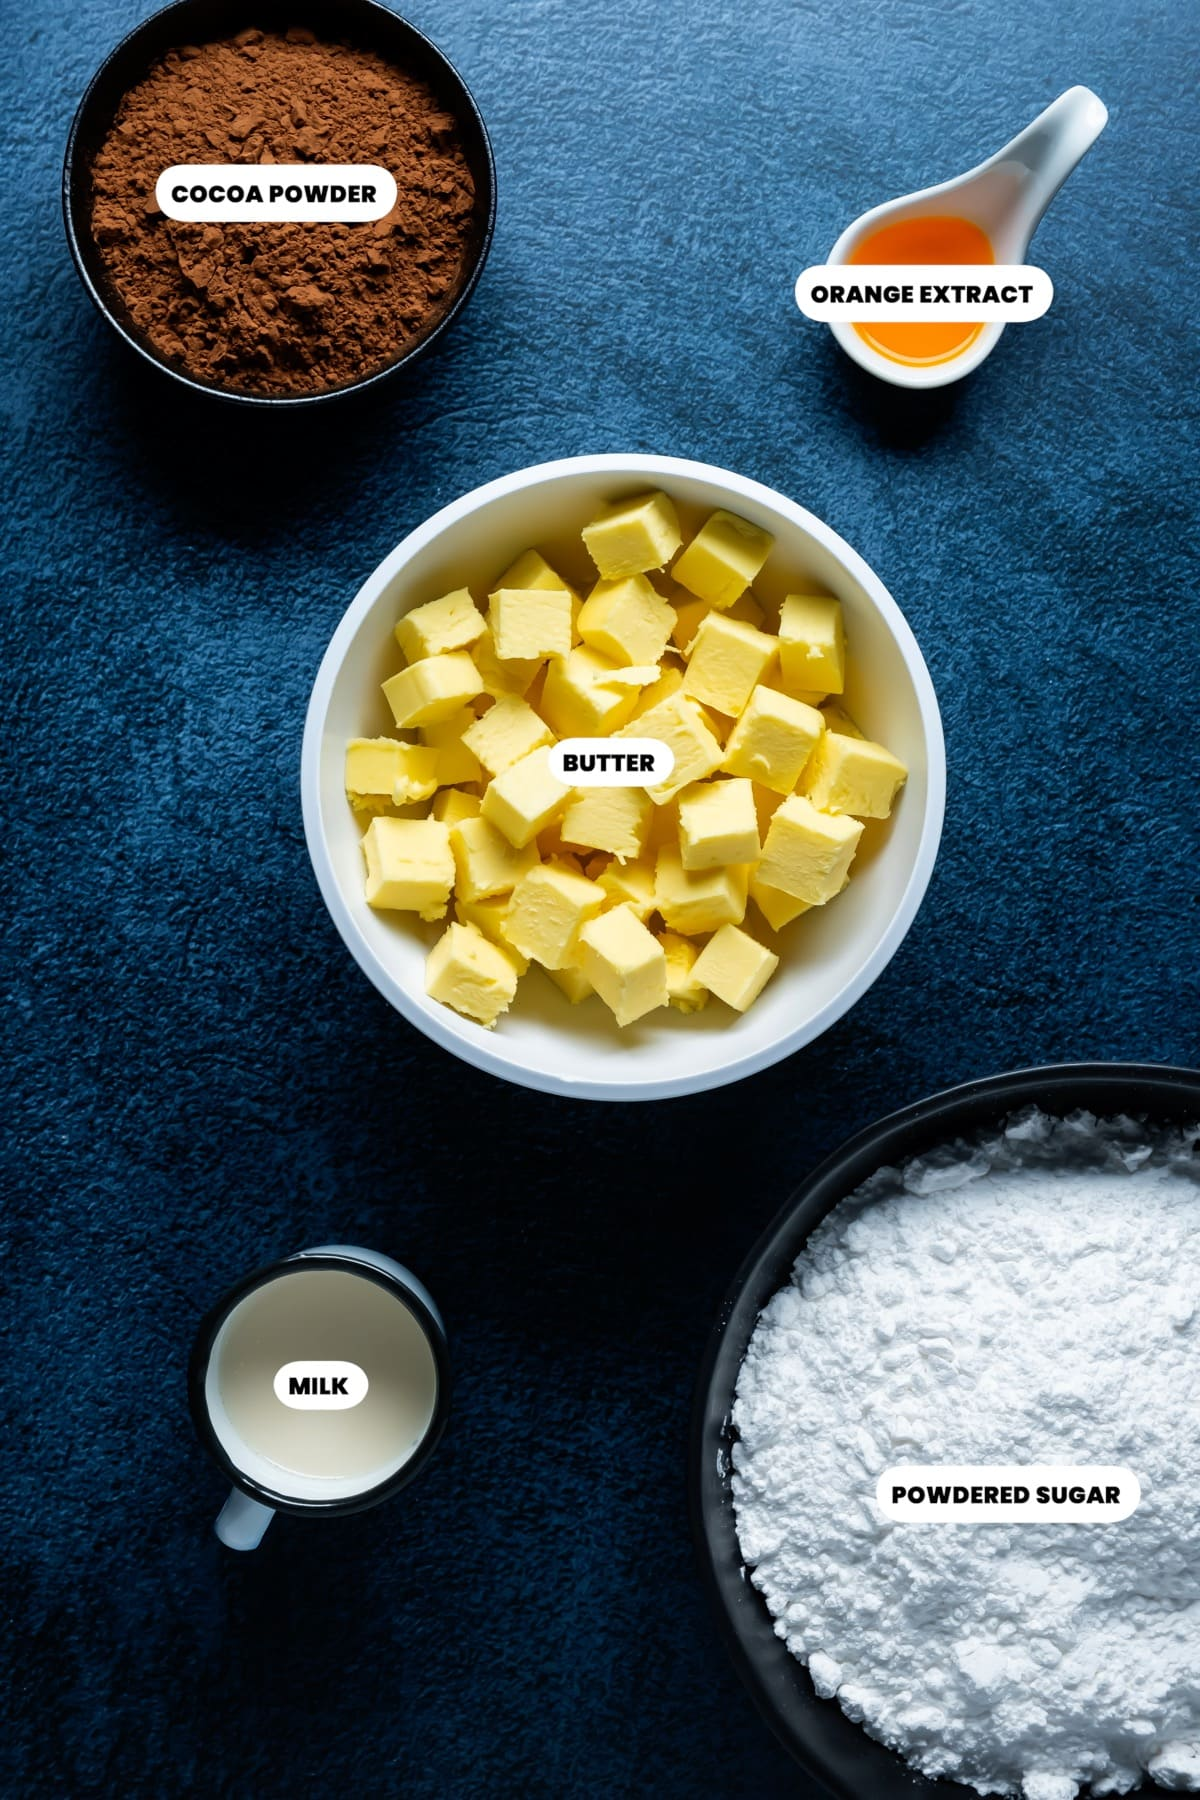 Photo of the ingredients needed to make chocolate orange buttercream frosting.